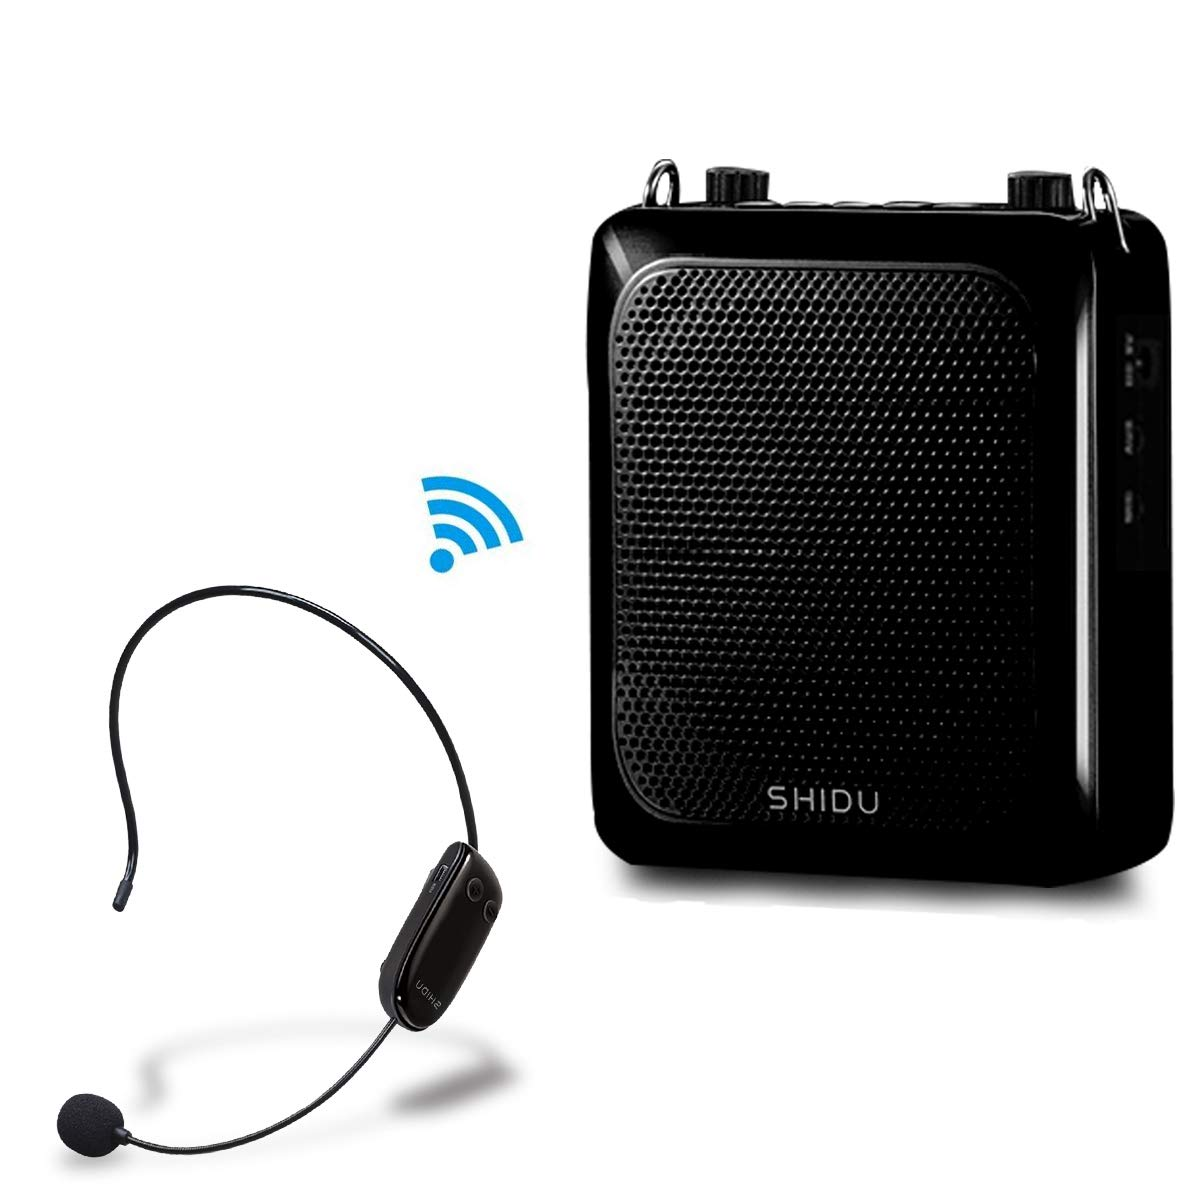 Bluetooth Voice Amplifier with Wireless Microphone Headset, 25W (4000mAh) Echo Effect Loudspeaker Amplifier Personal Pa System Portable Megaphone for Teachers, Elderly, Tour Guides, Presentations Etc.